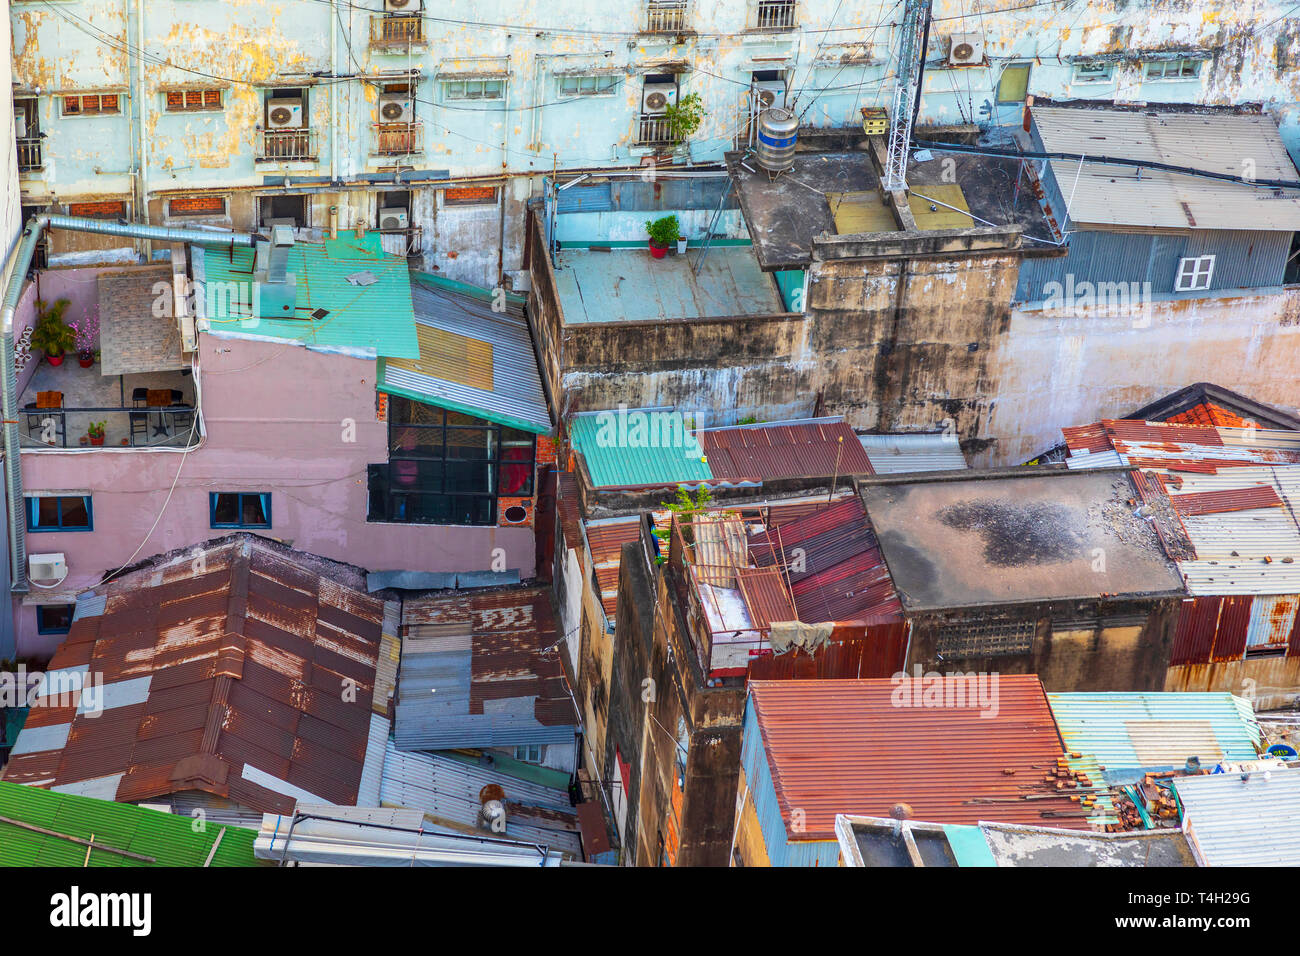 Colourful Roofs Of Traditional Vietnam Houses In Ho Chi Minh City Centre Saigon Vietnam Asia Stock Photo Alamy